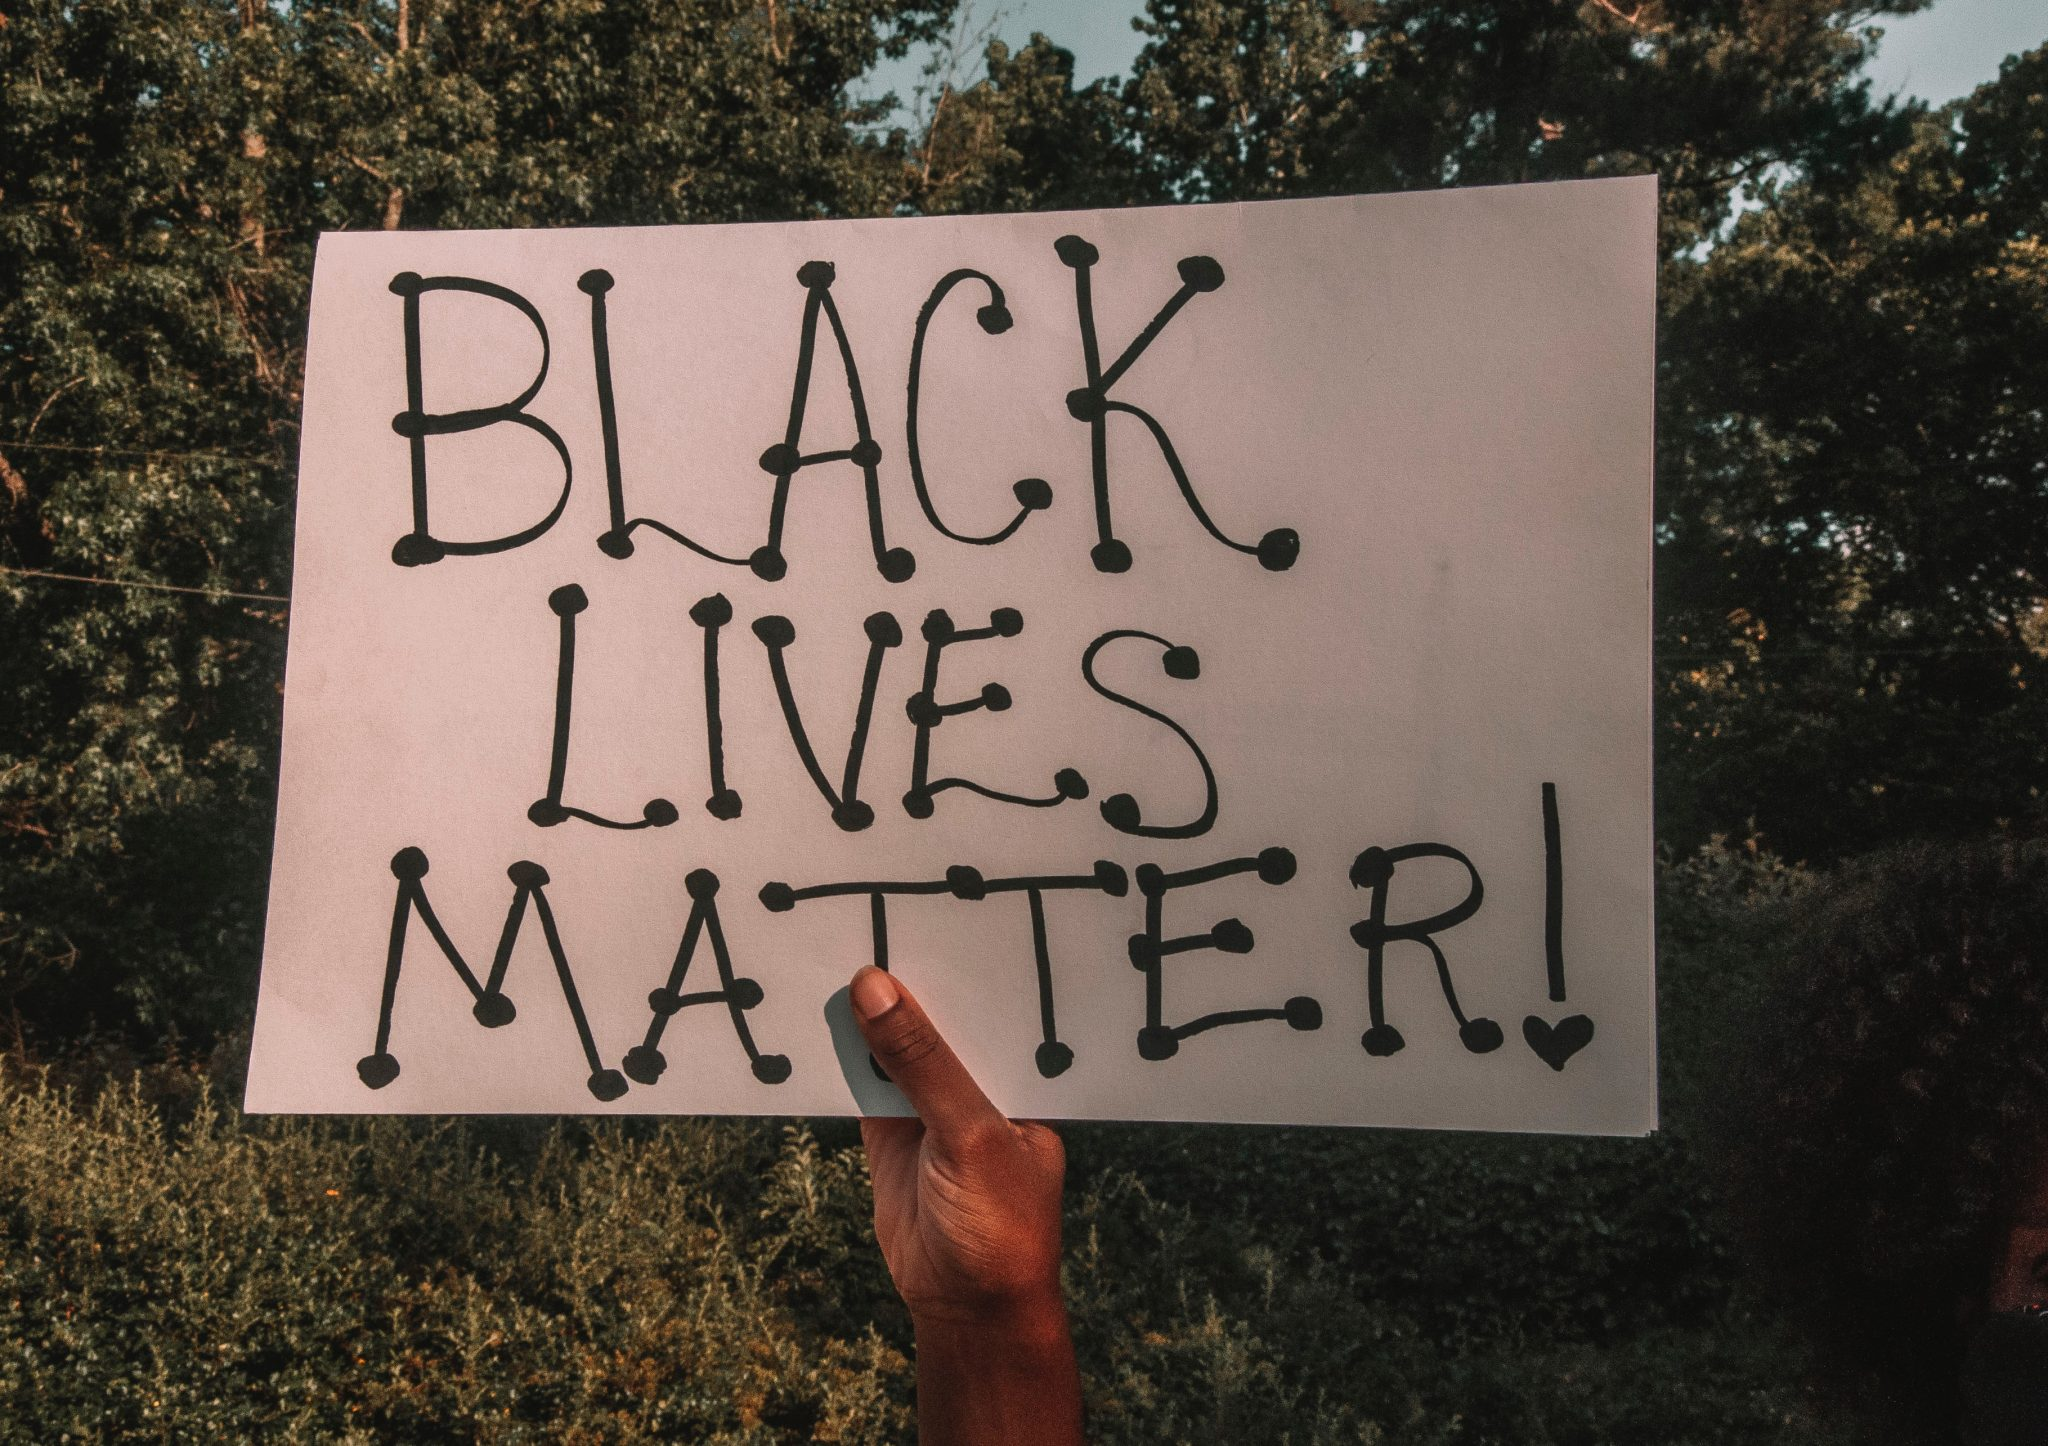 Black Lives Matter and universities: institutional racism must be dismantled